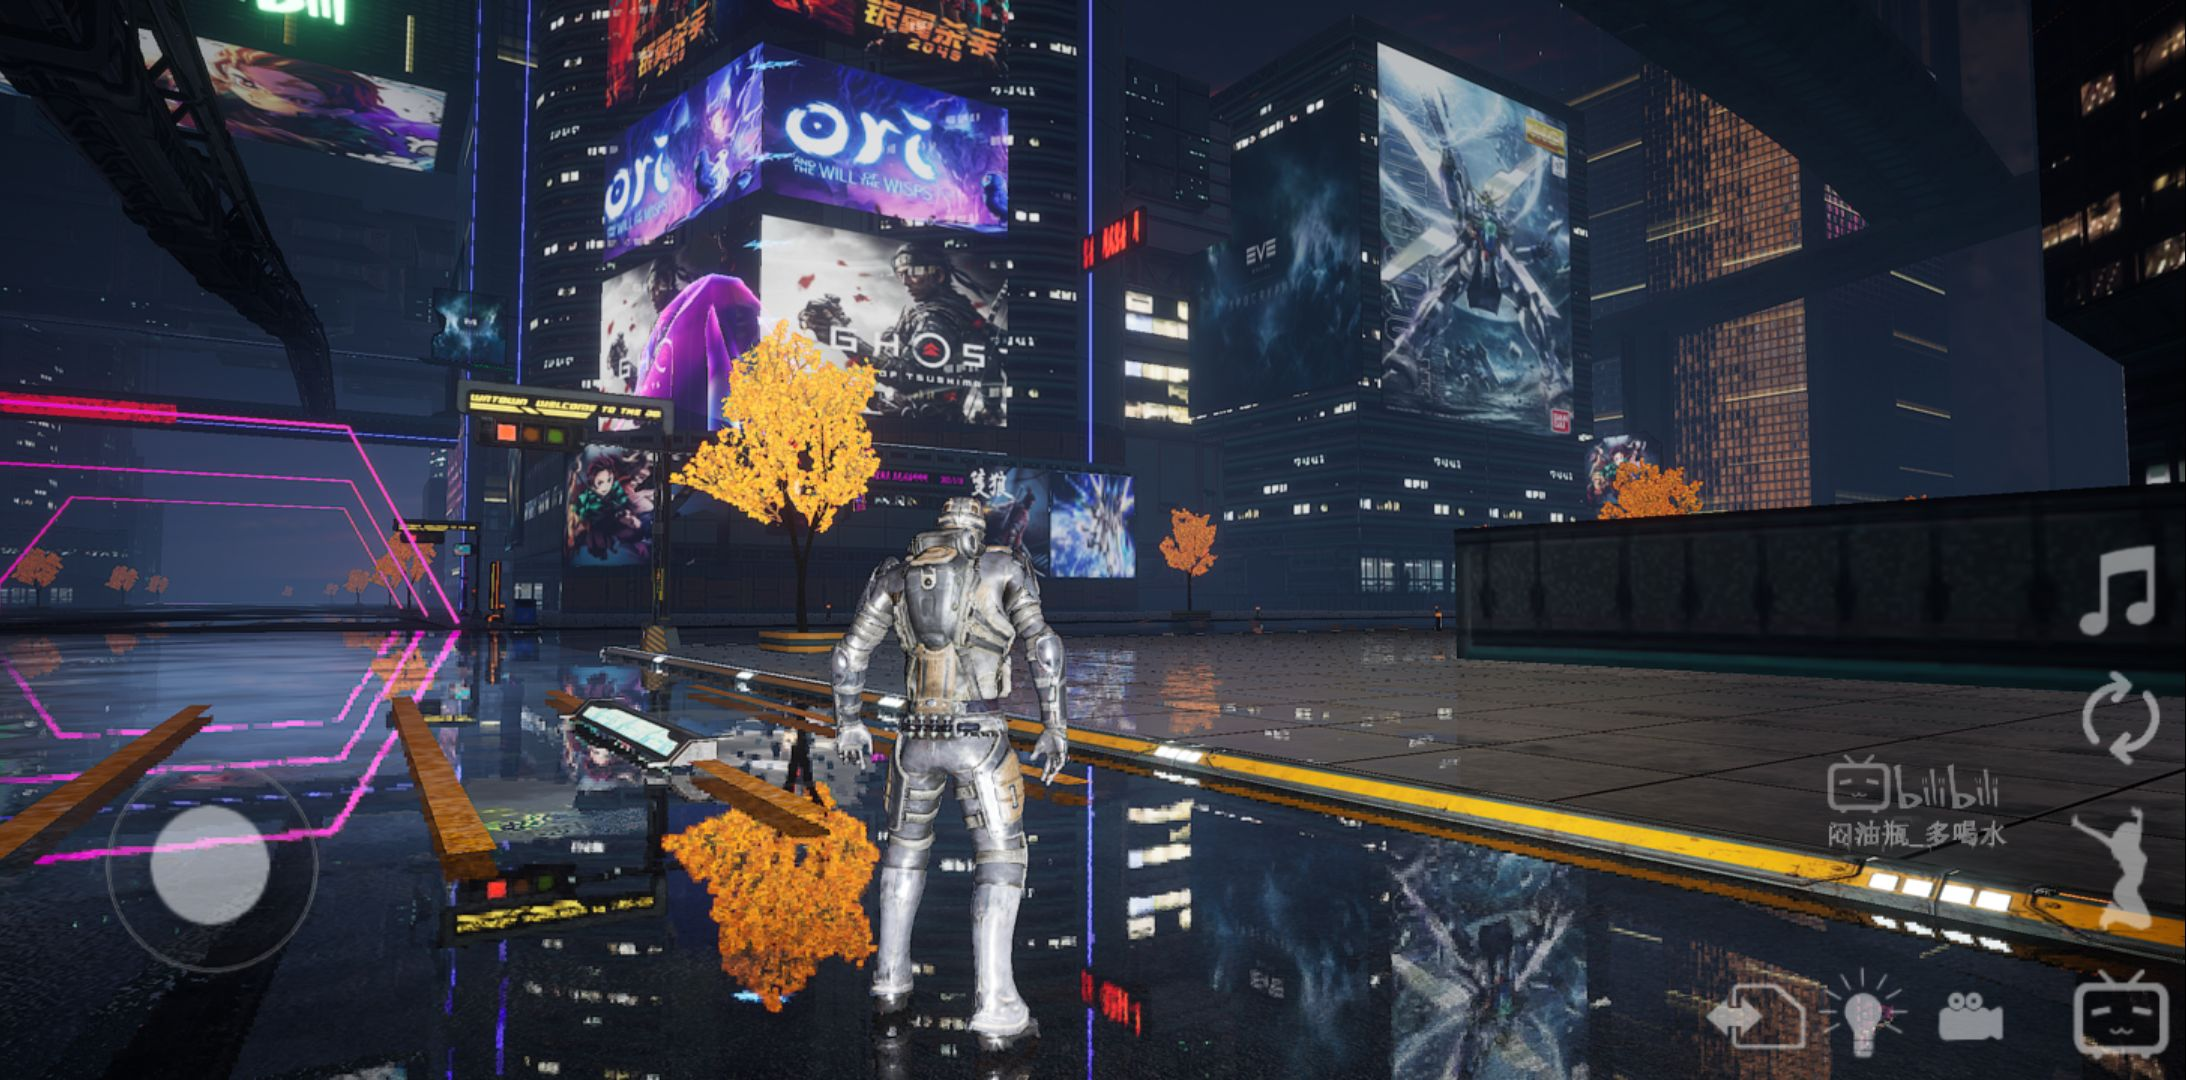 Cyberpunk 2077 Android Port [GDrive Link]